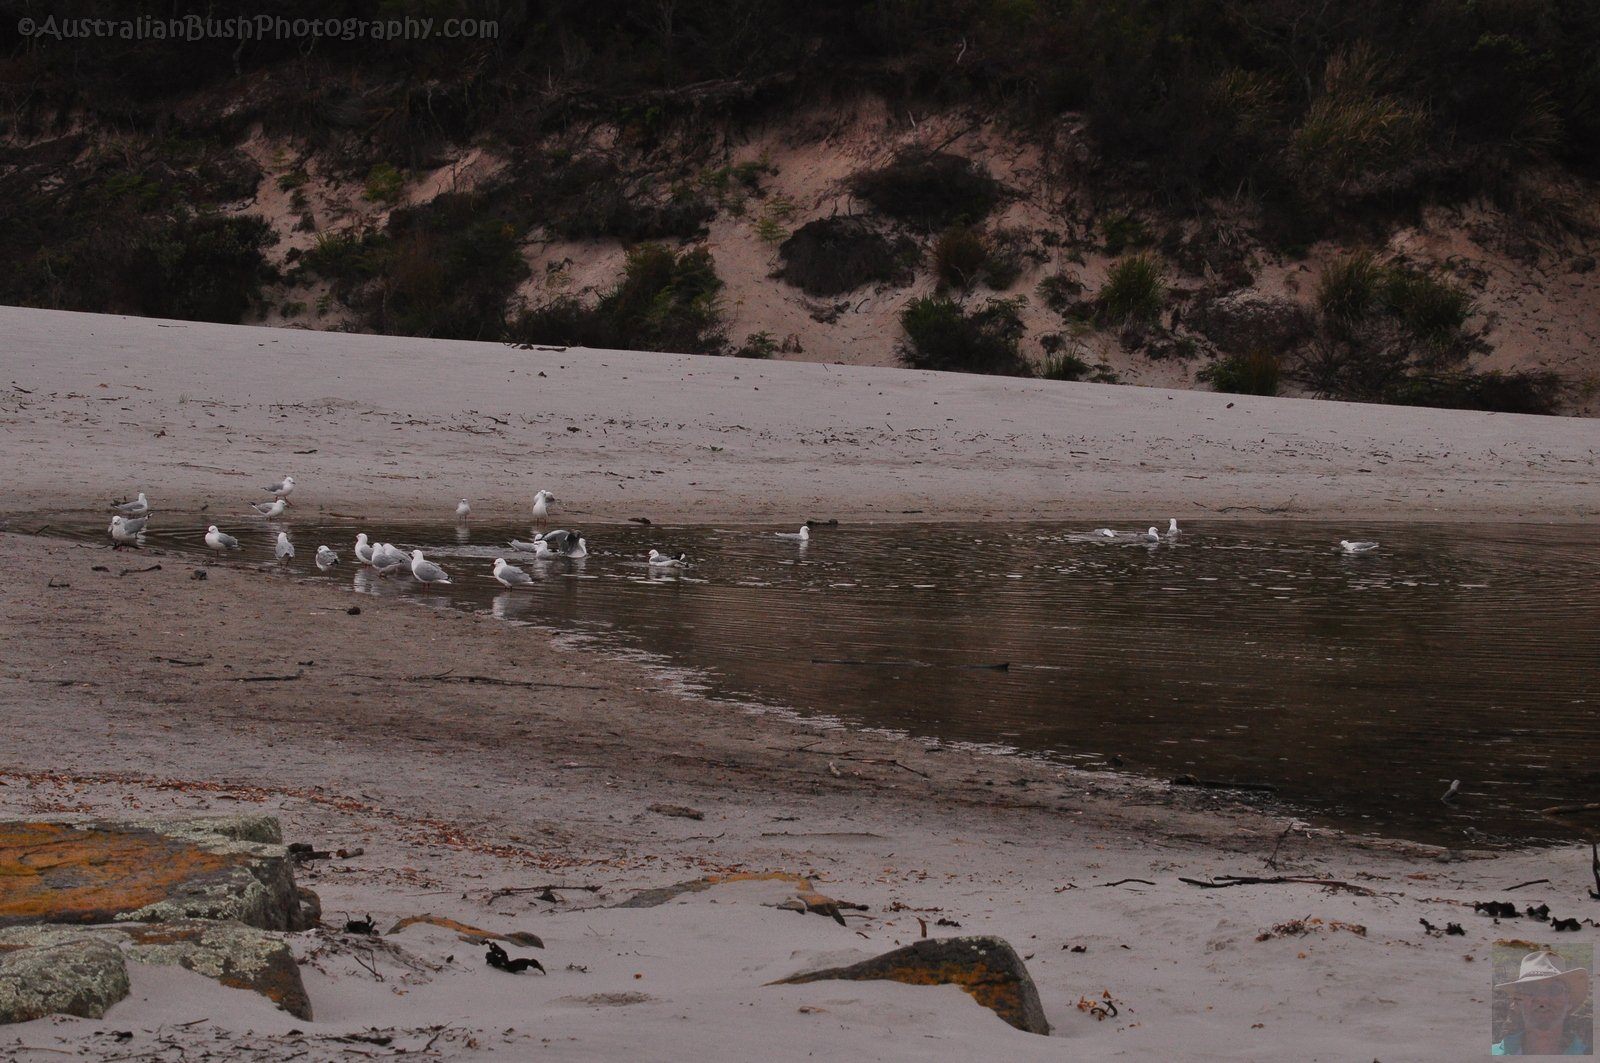 Silver Gulls bathing, the Lagoon Fortescue Bay